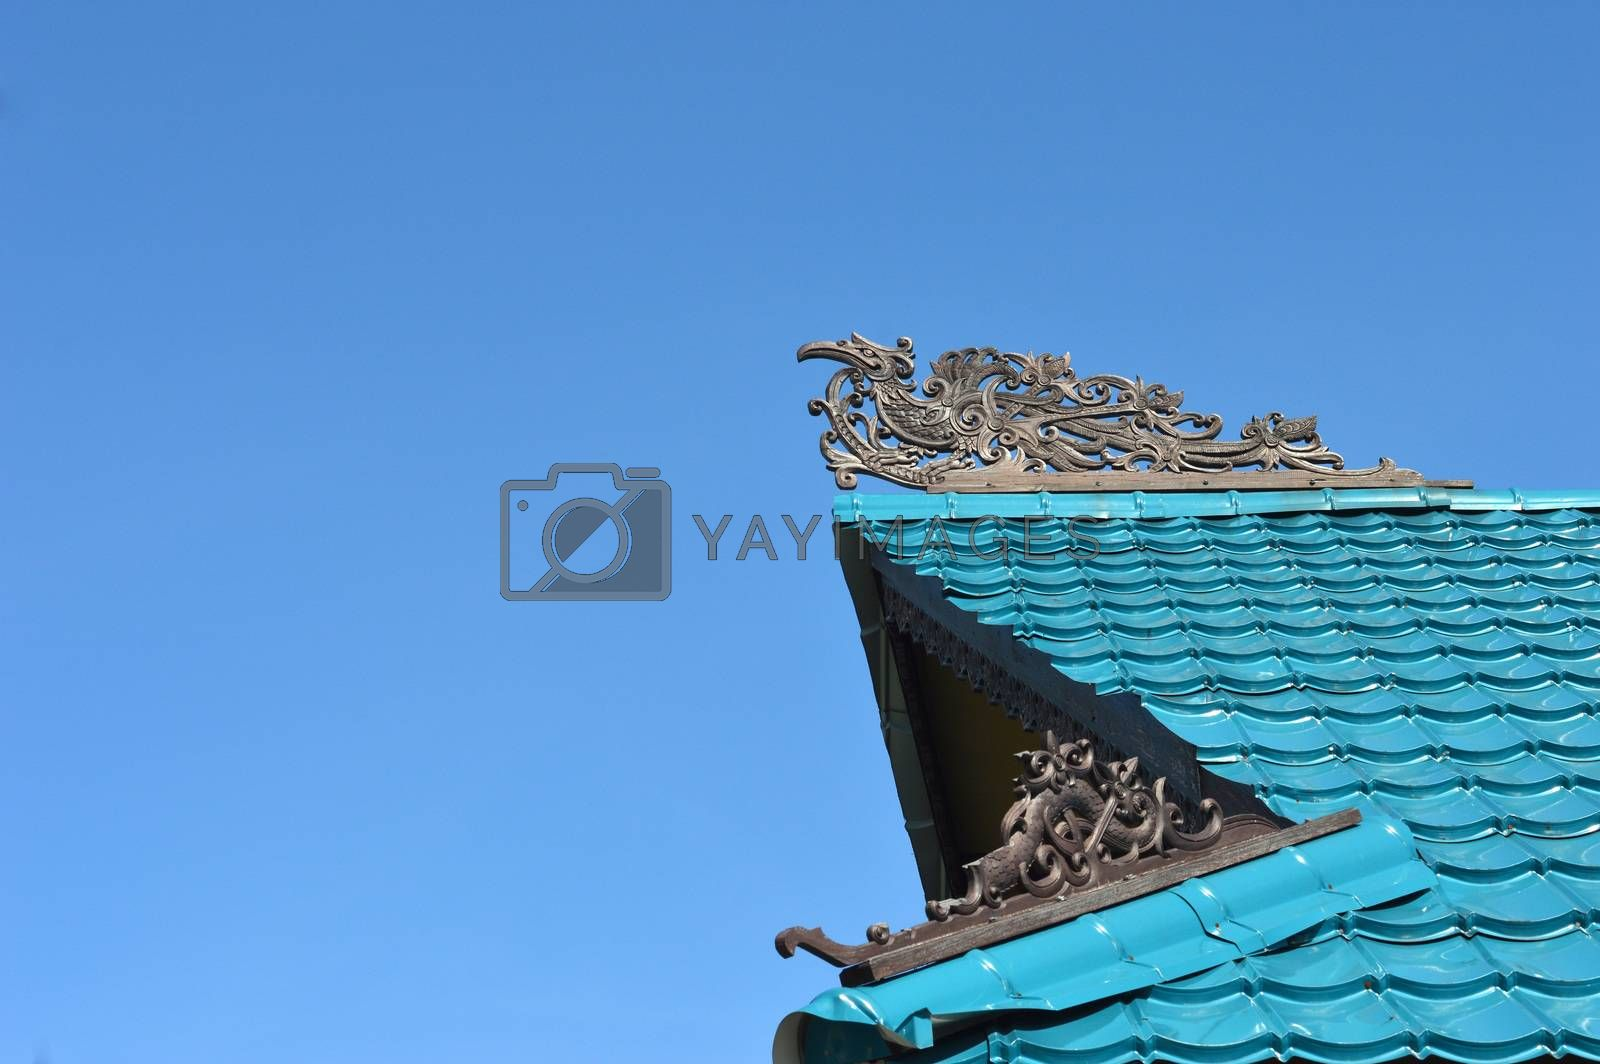 Dayak ornaments on the traditional tribal carvings at the roof top of buildings